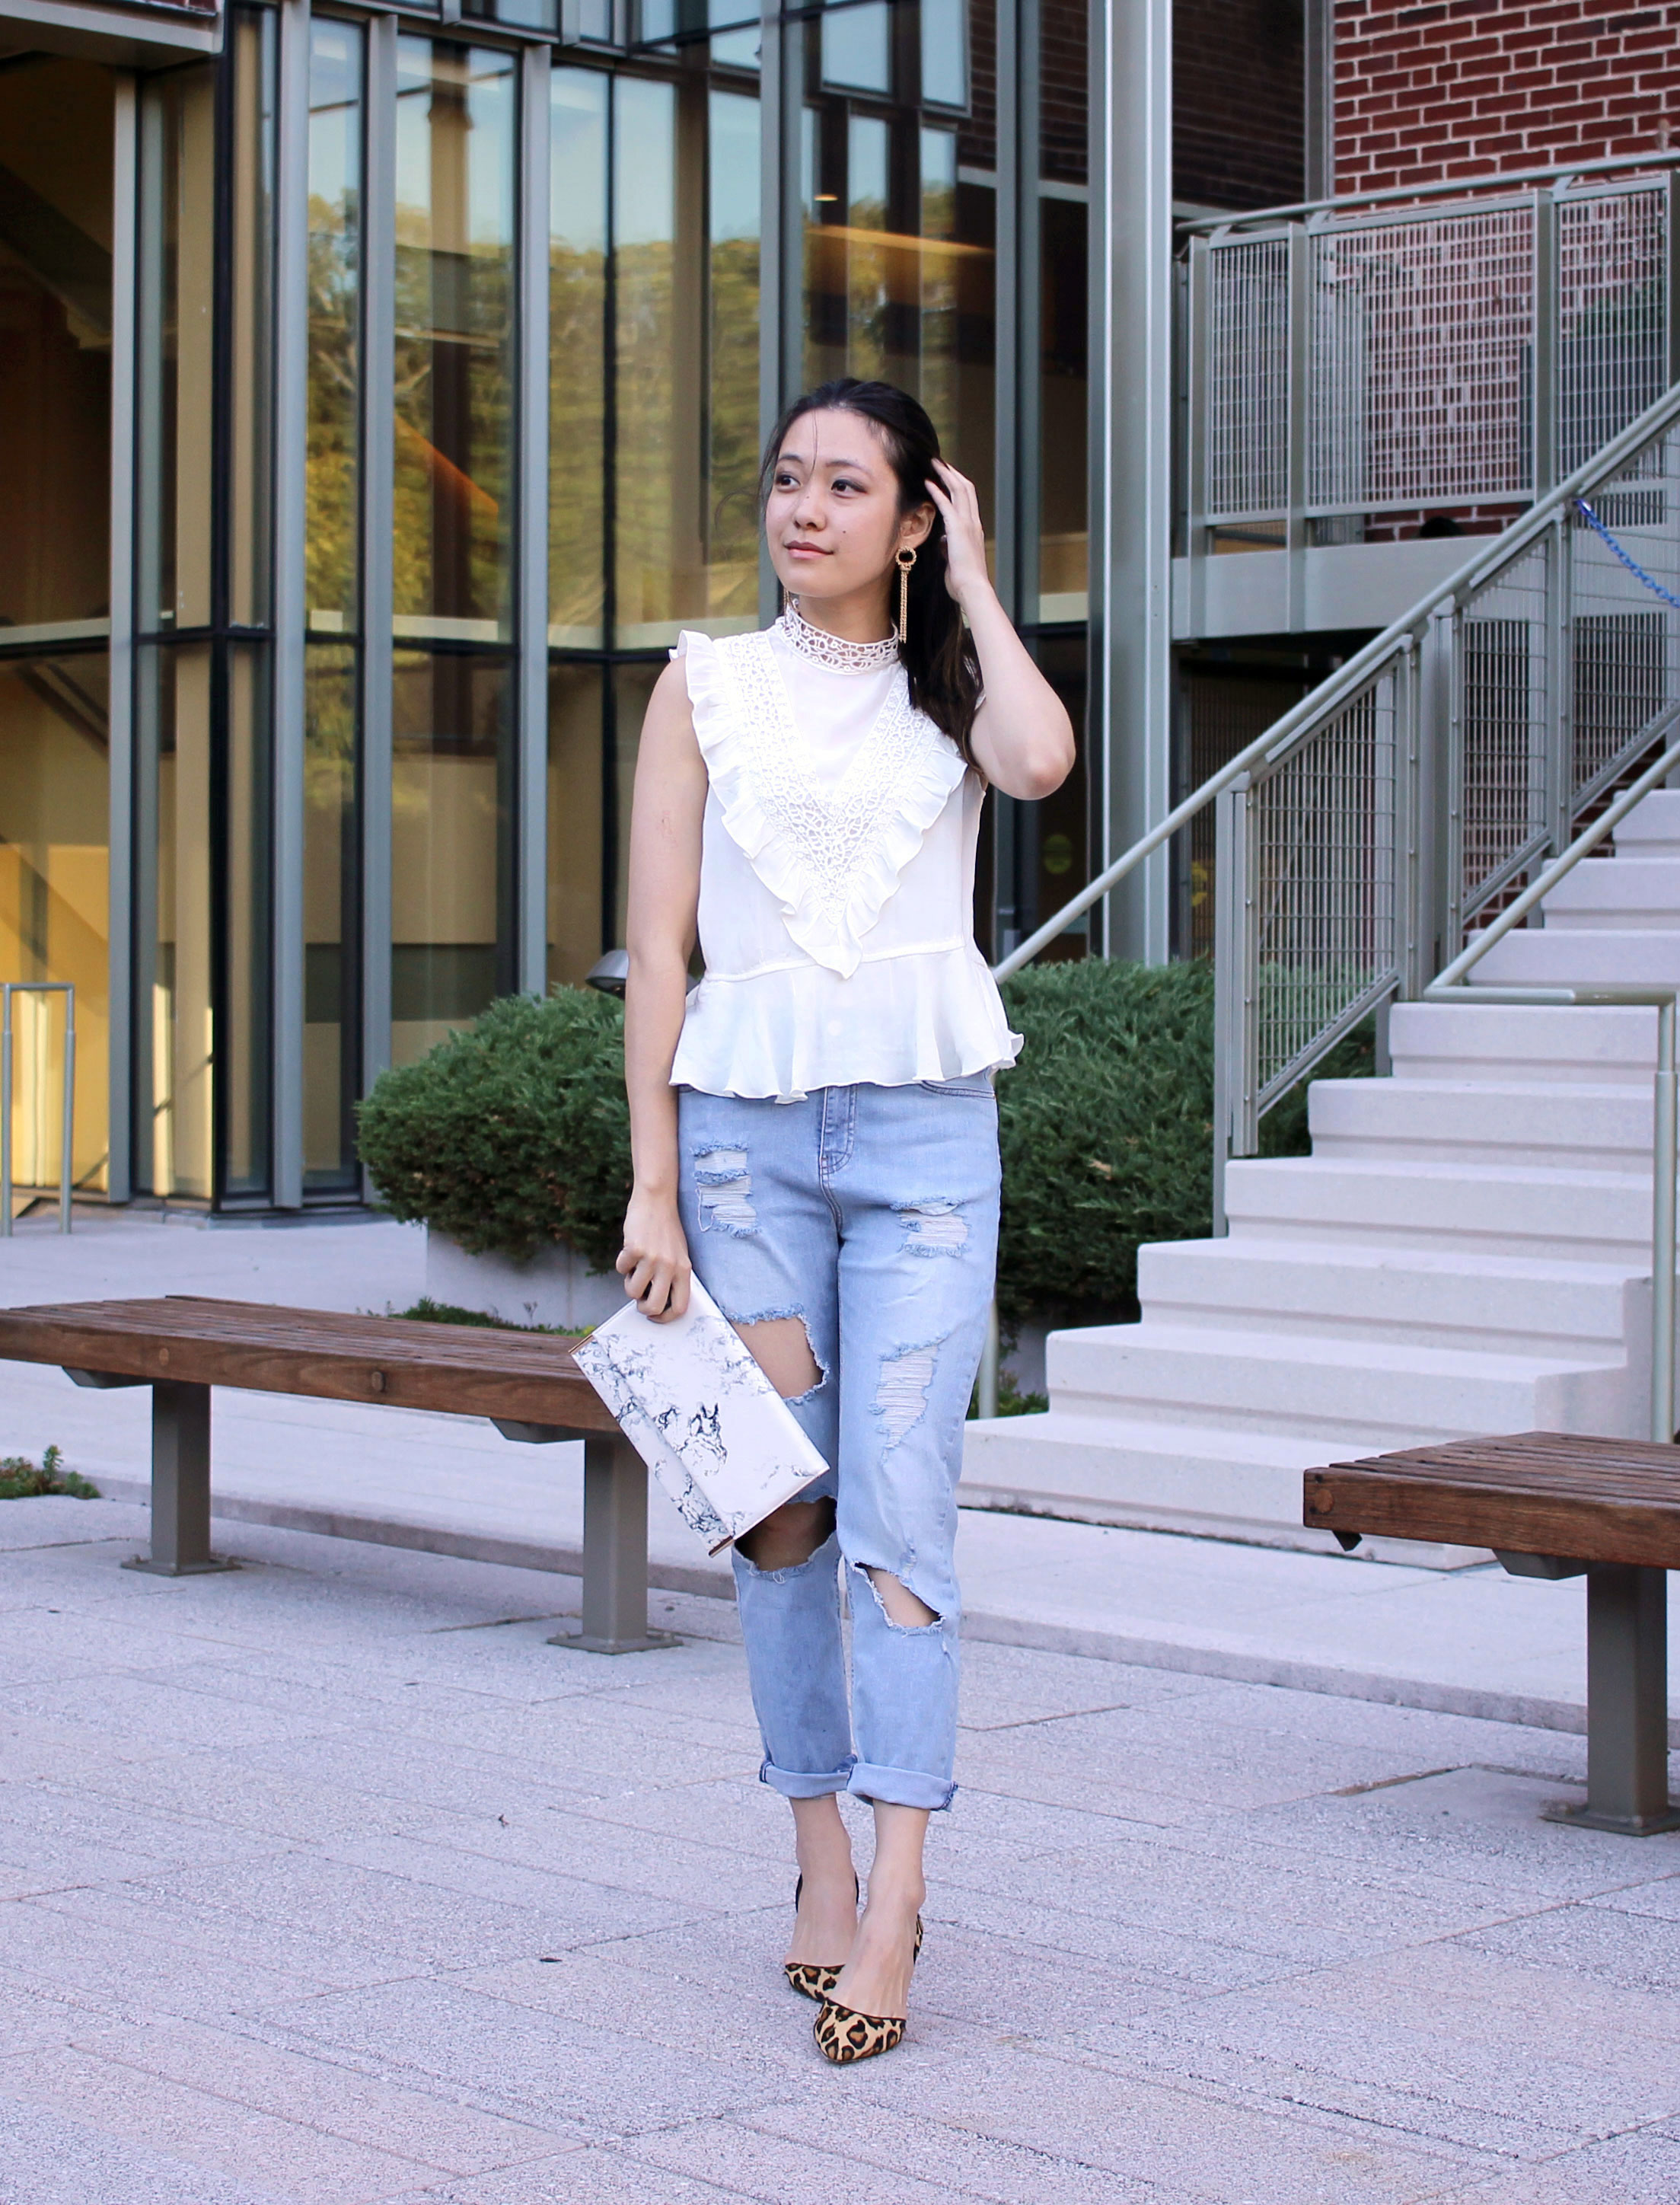 Ripped hole jeans at knees and marbled clutch